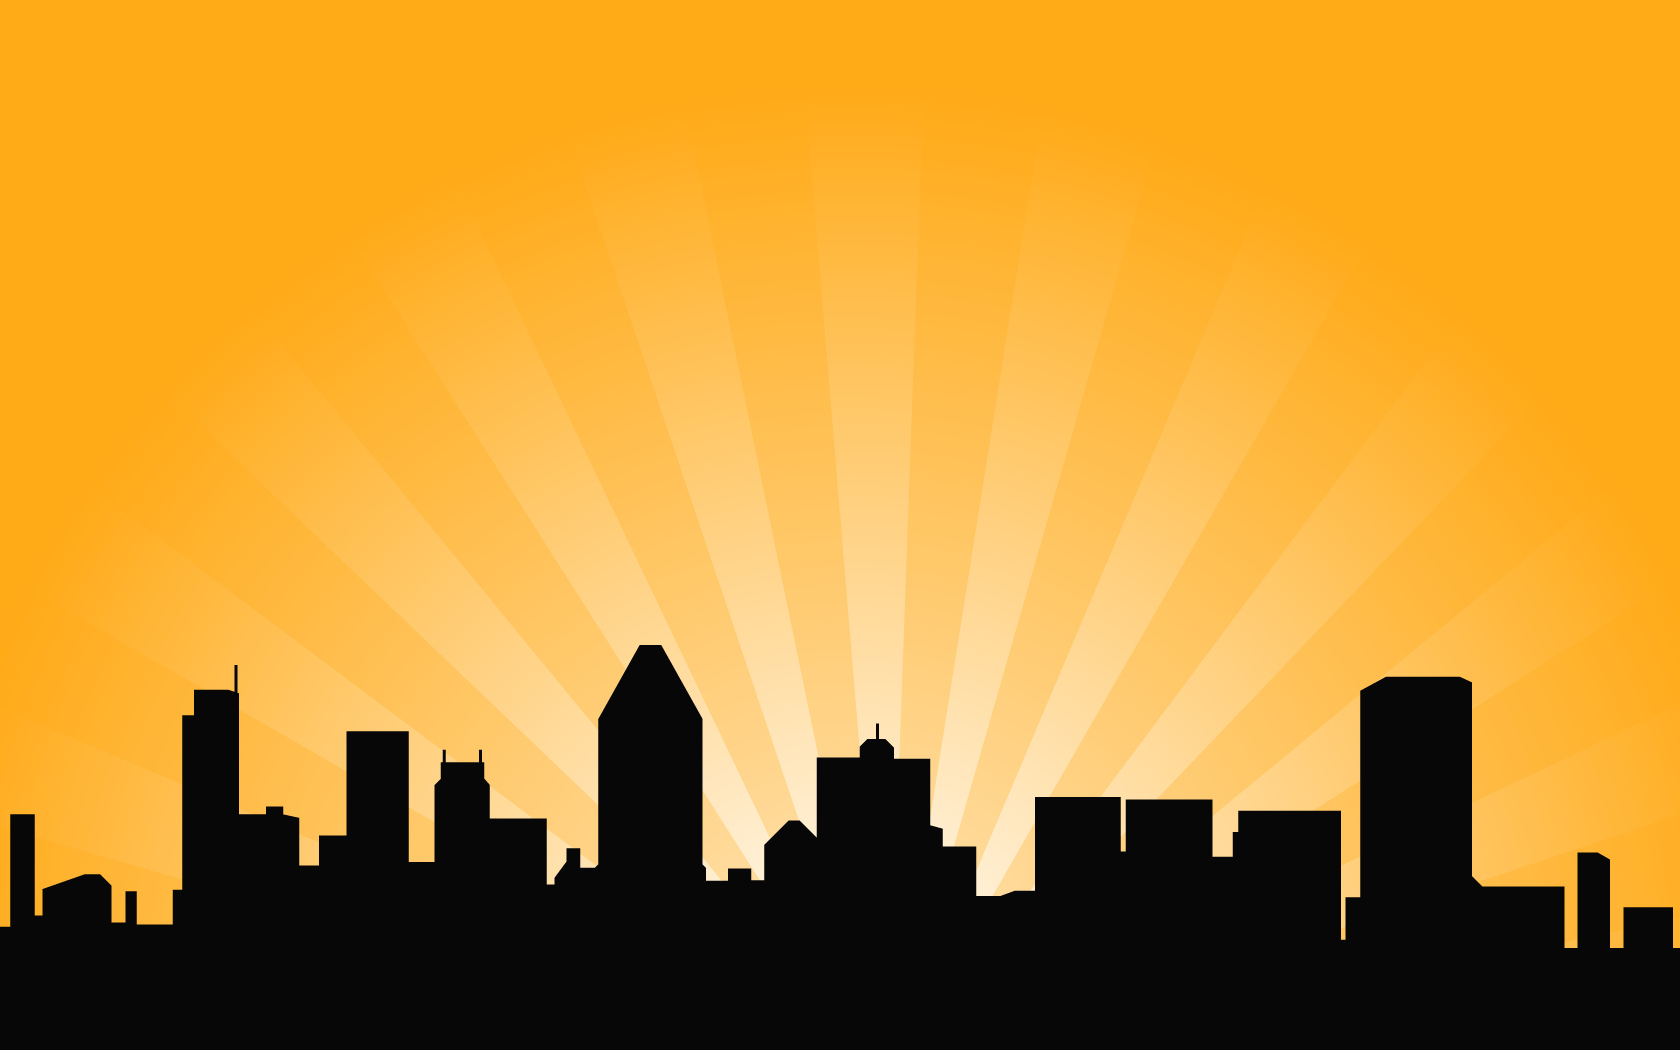 1680x1050 City Skyline Vector Background